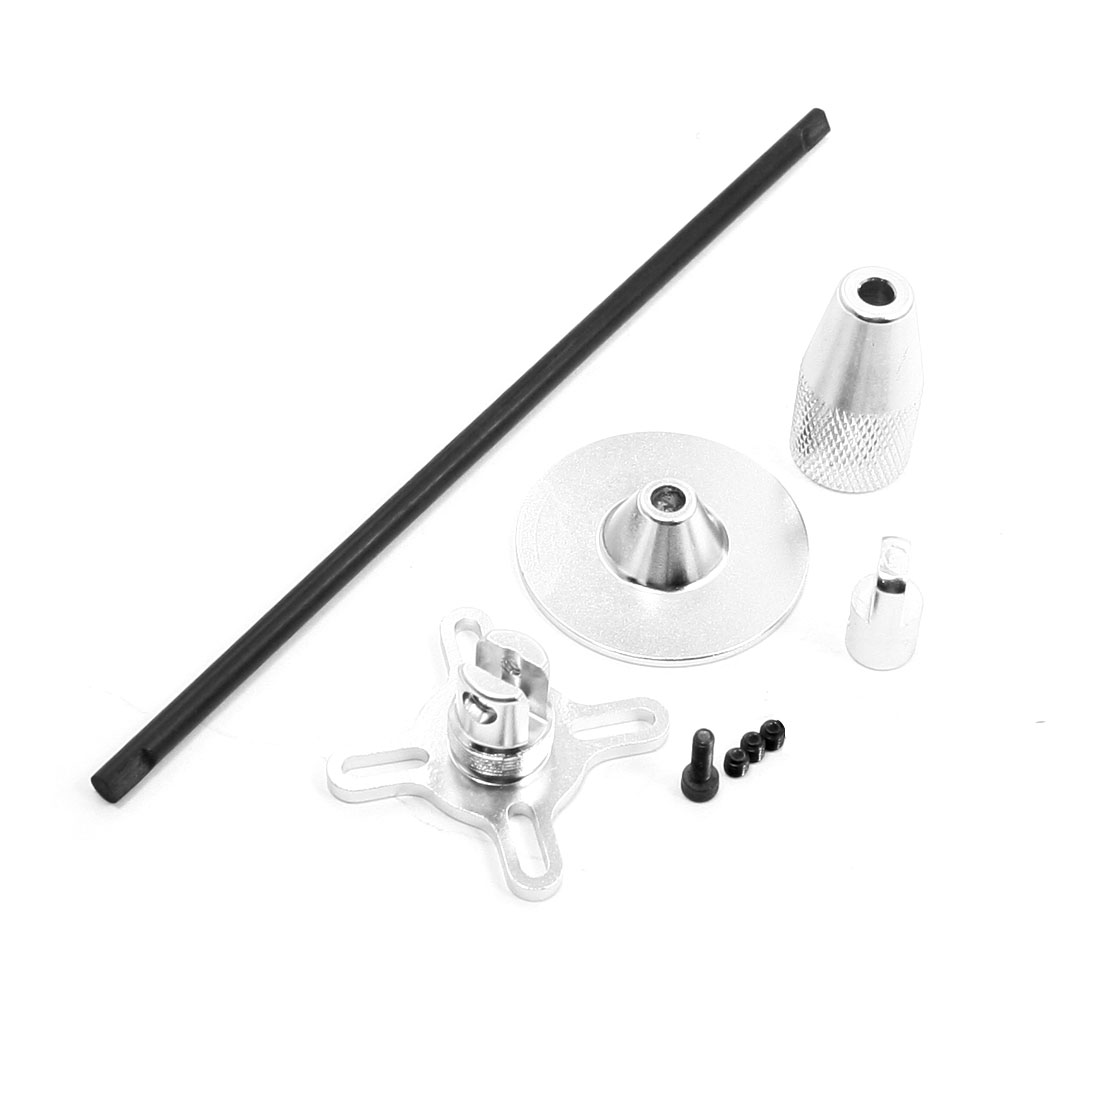 GPS Folding Antenna Mount Holder Set Kit for RC Quadcopter Multicopter